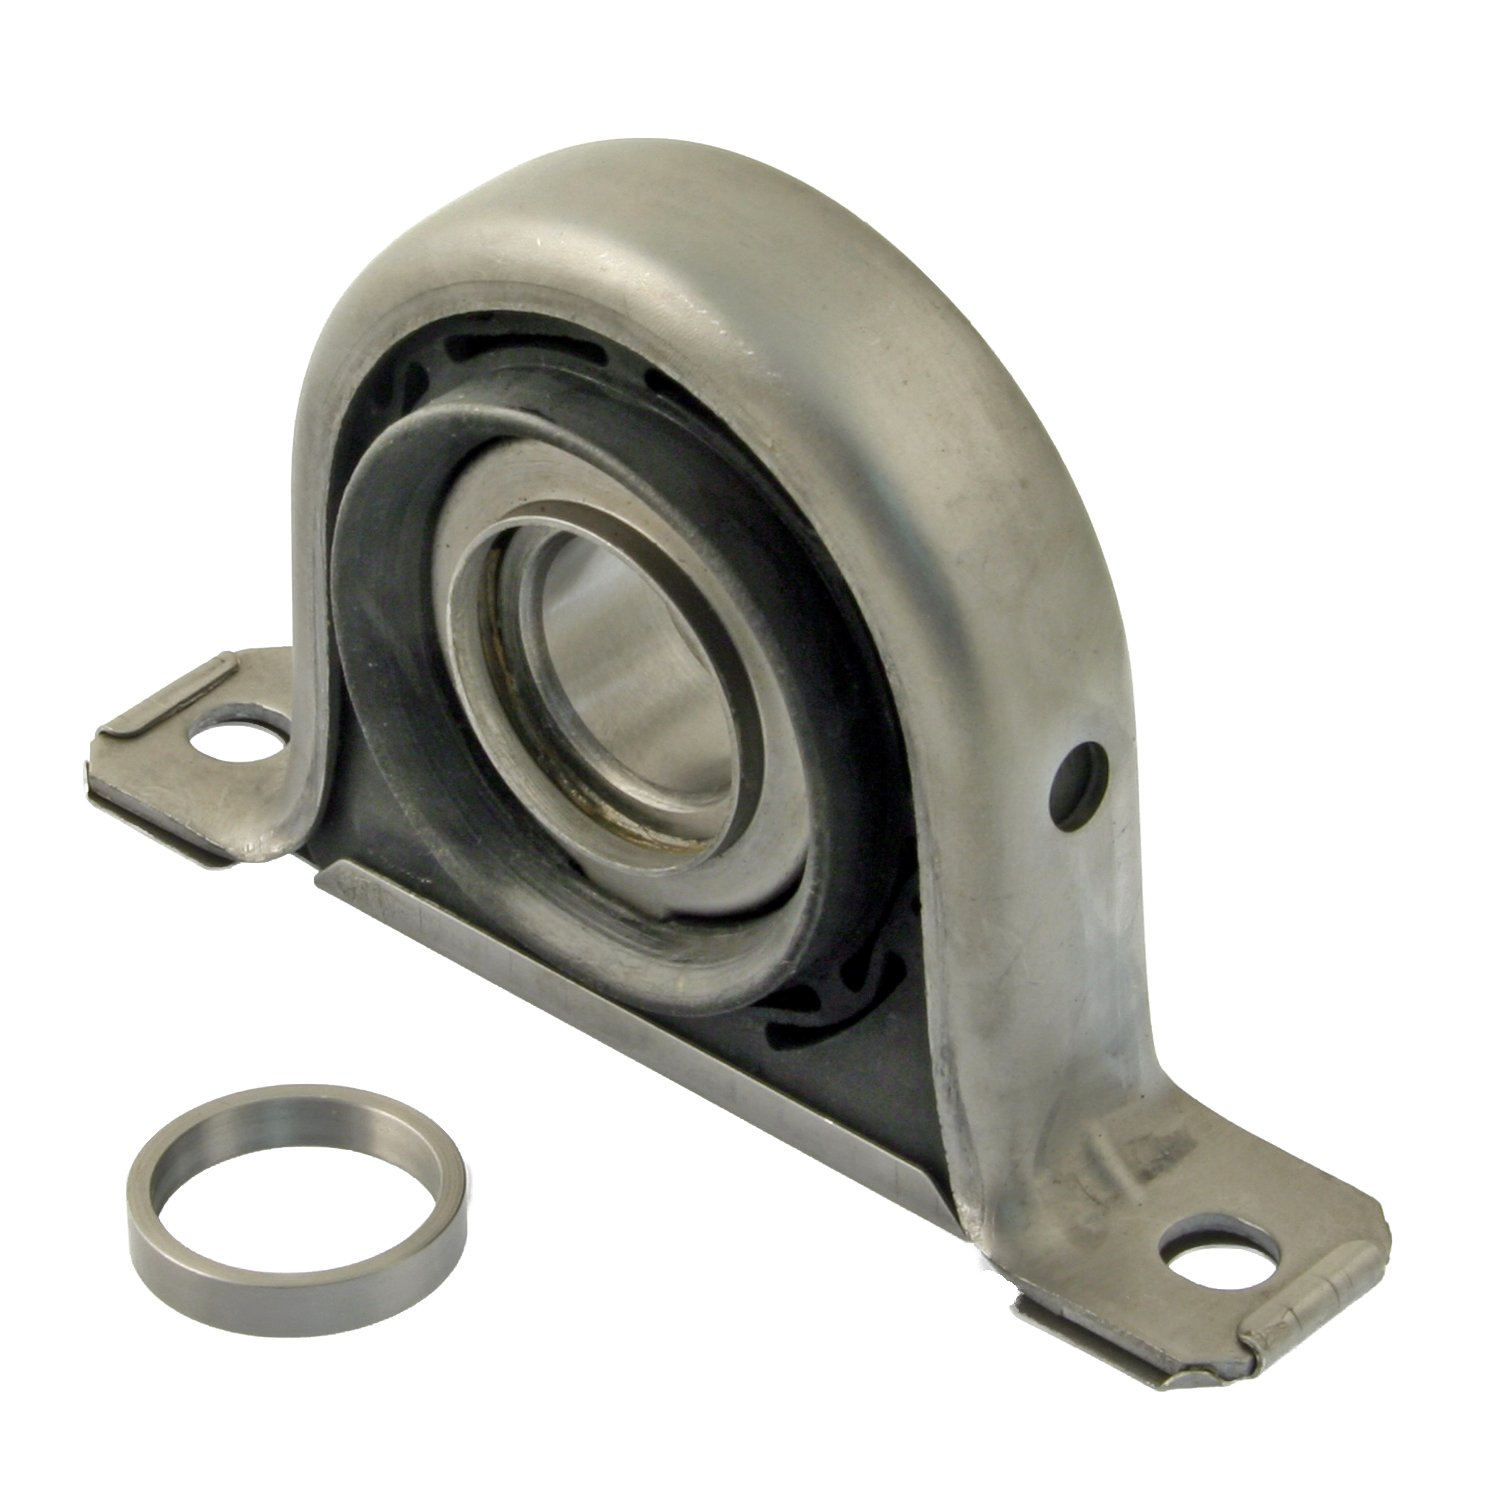 Precision HB88107A Drive Shaft Center Support (Hanger) Bearing Precision Automotive